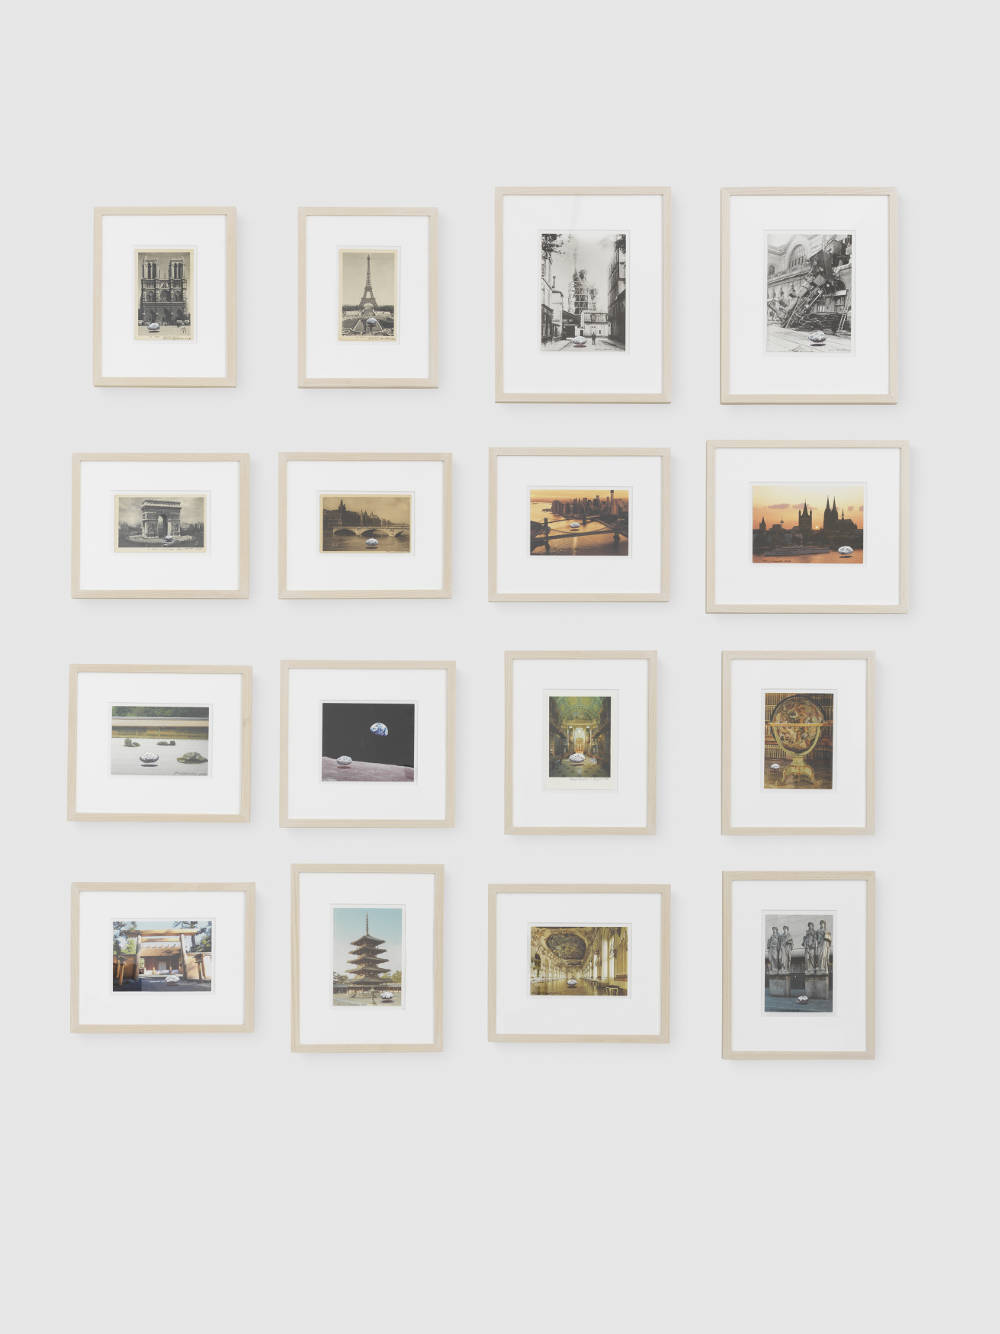 Keiji Uematsu, Floating Stone, 2017/2018. Set of 16 painted postcards, ball-point pen, Tipp-Ex. Dimensions variable. Courtesy the artist and Simon Lee Gallery